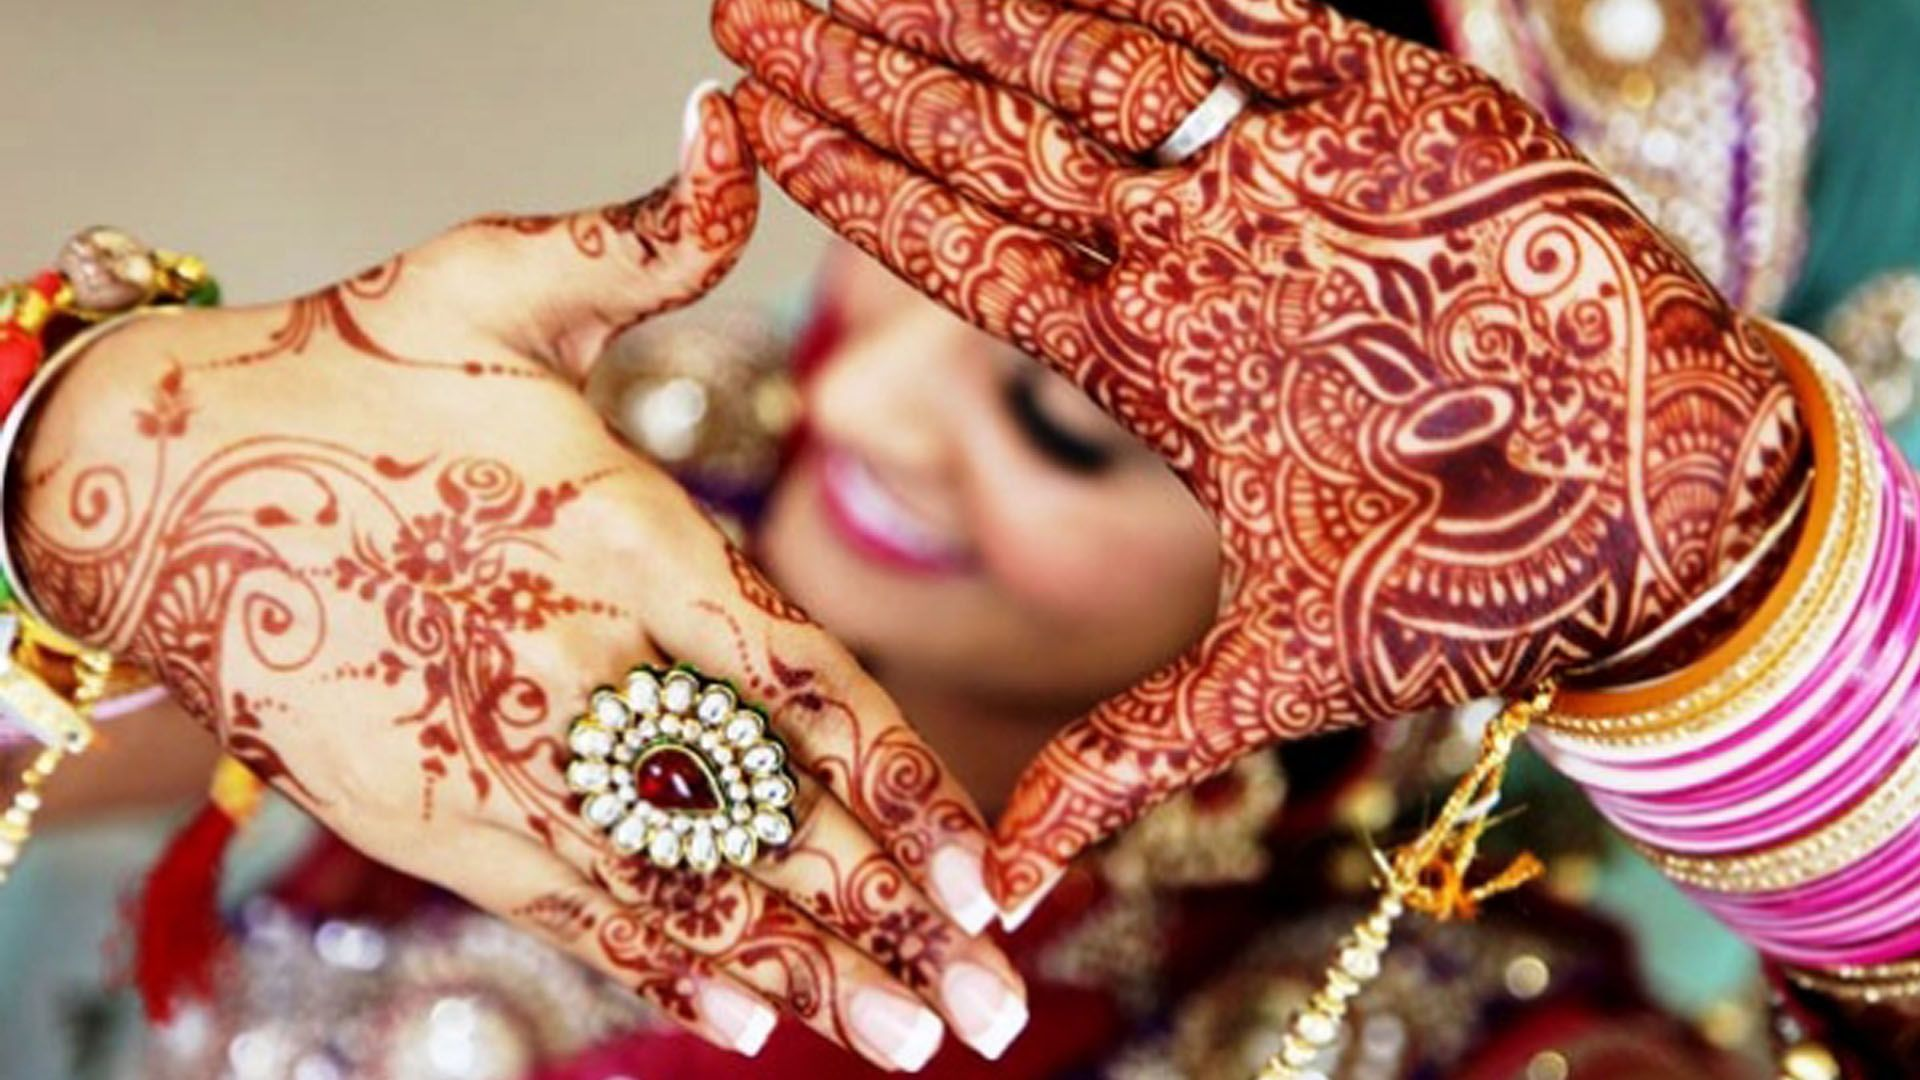 symbolism within henna and and its significance in indian traditional wedding ceremonies